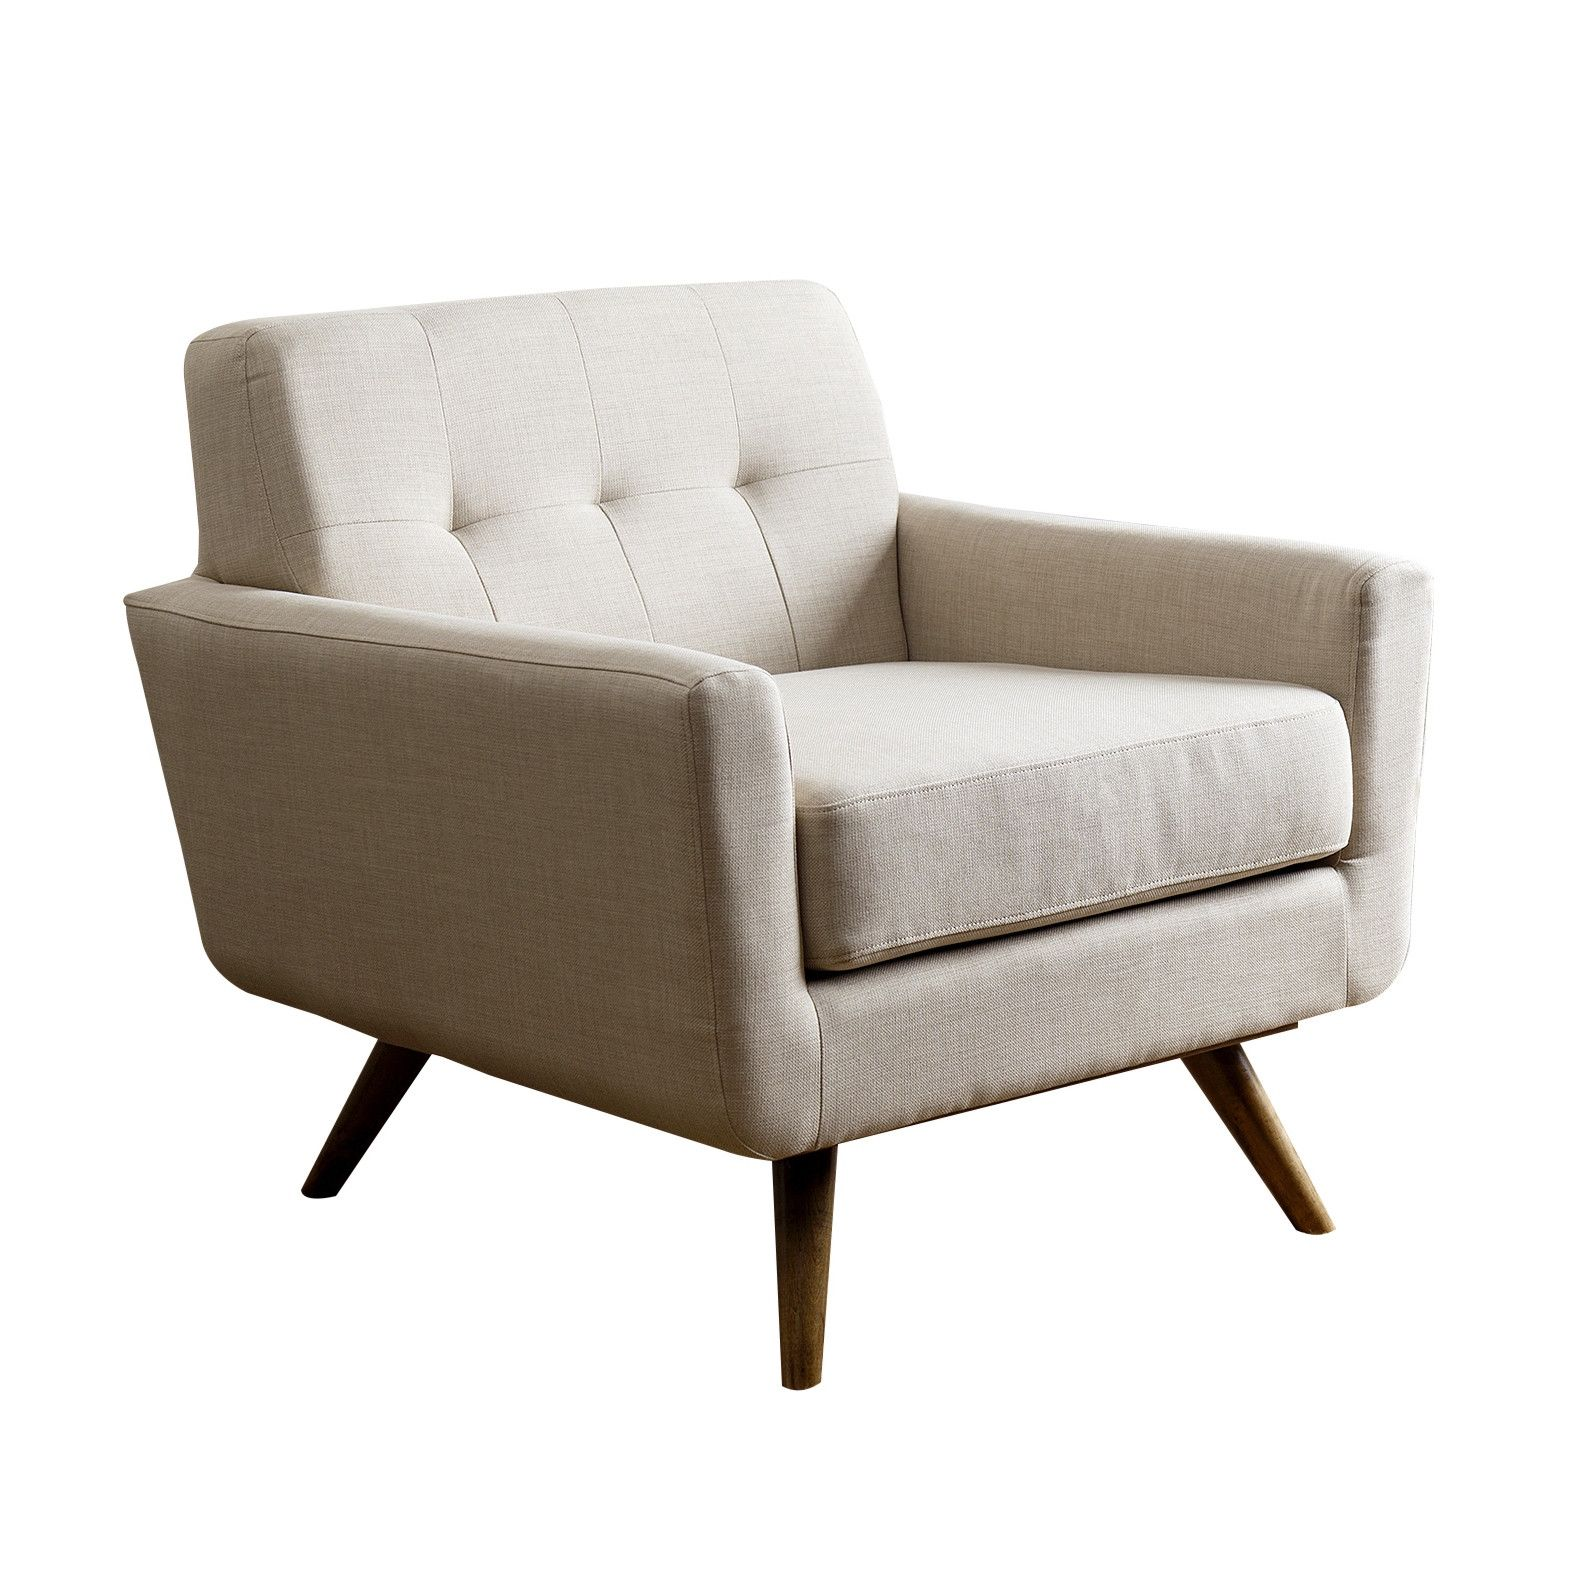 Corrigan Studio Douglas Fabric Arm Chair